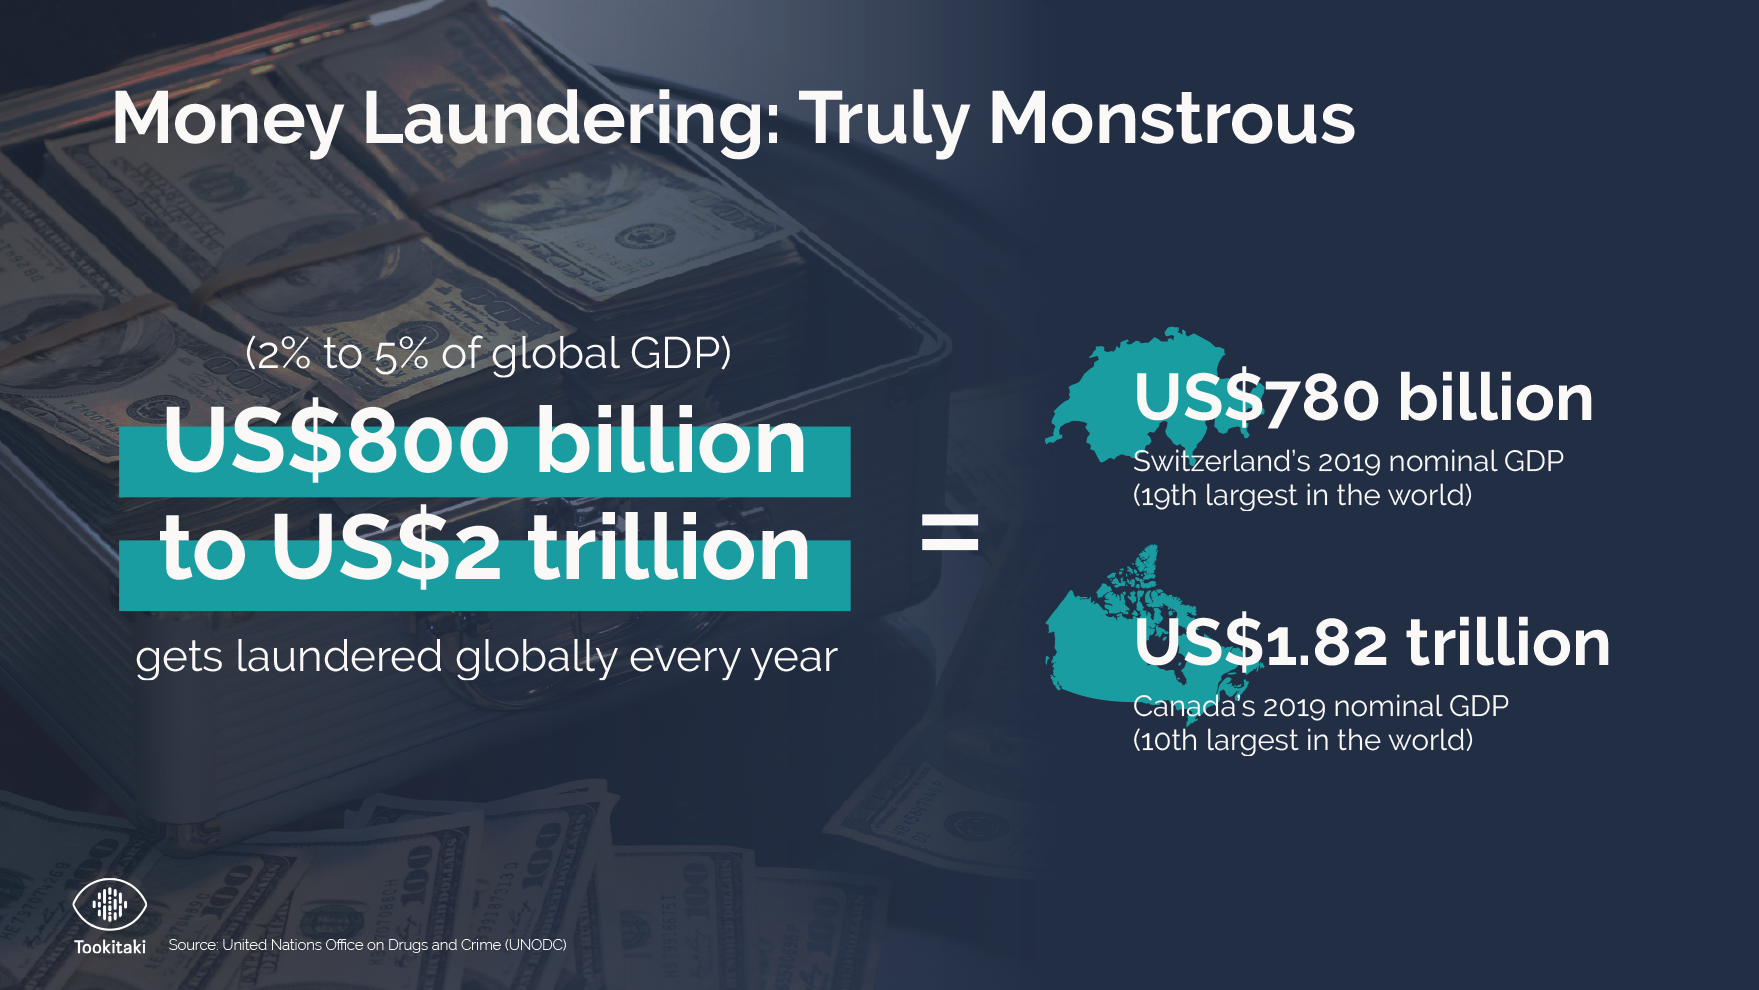 Money Laundering: Truly Monstrous